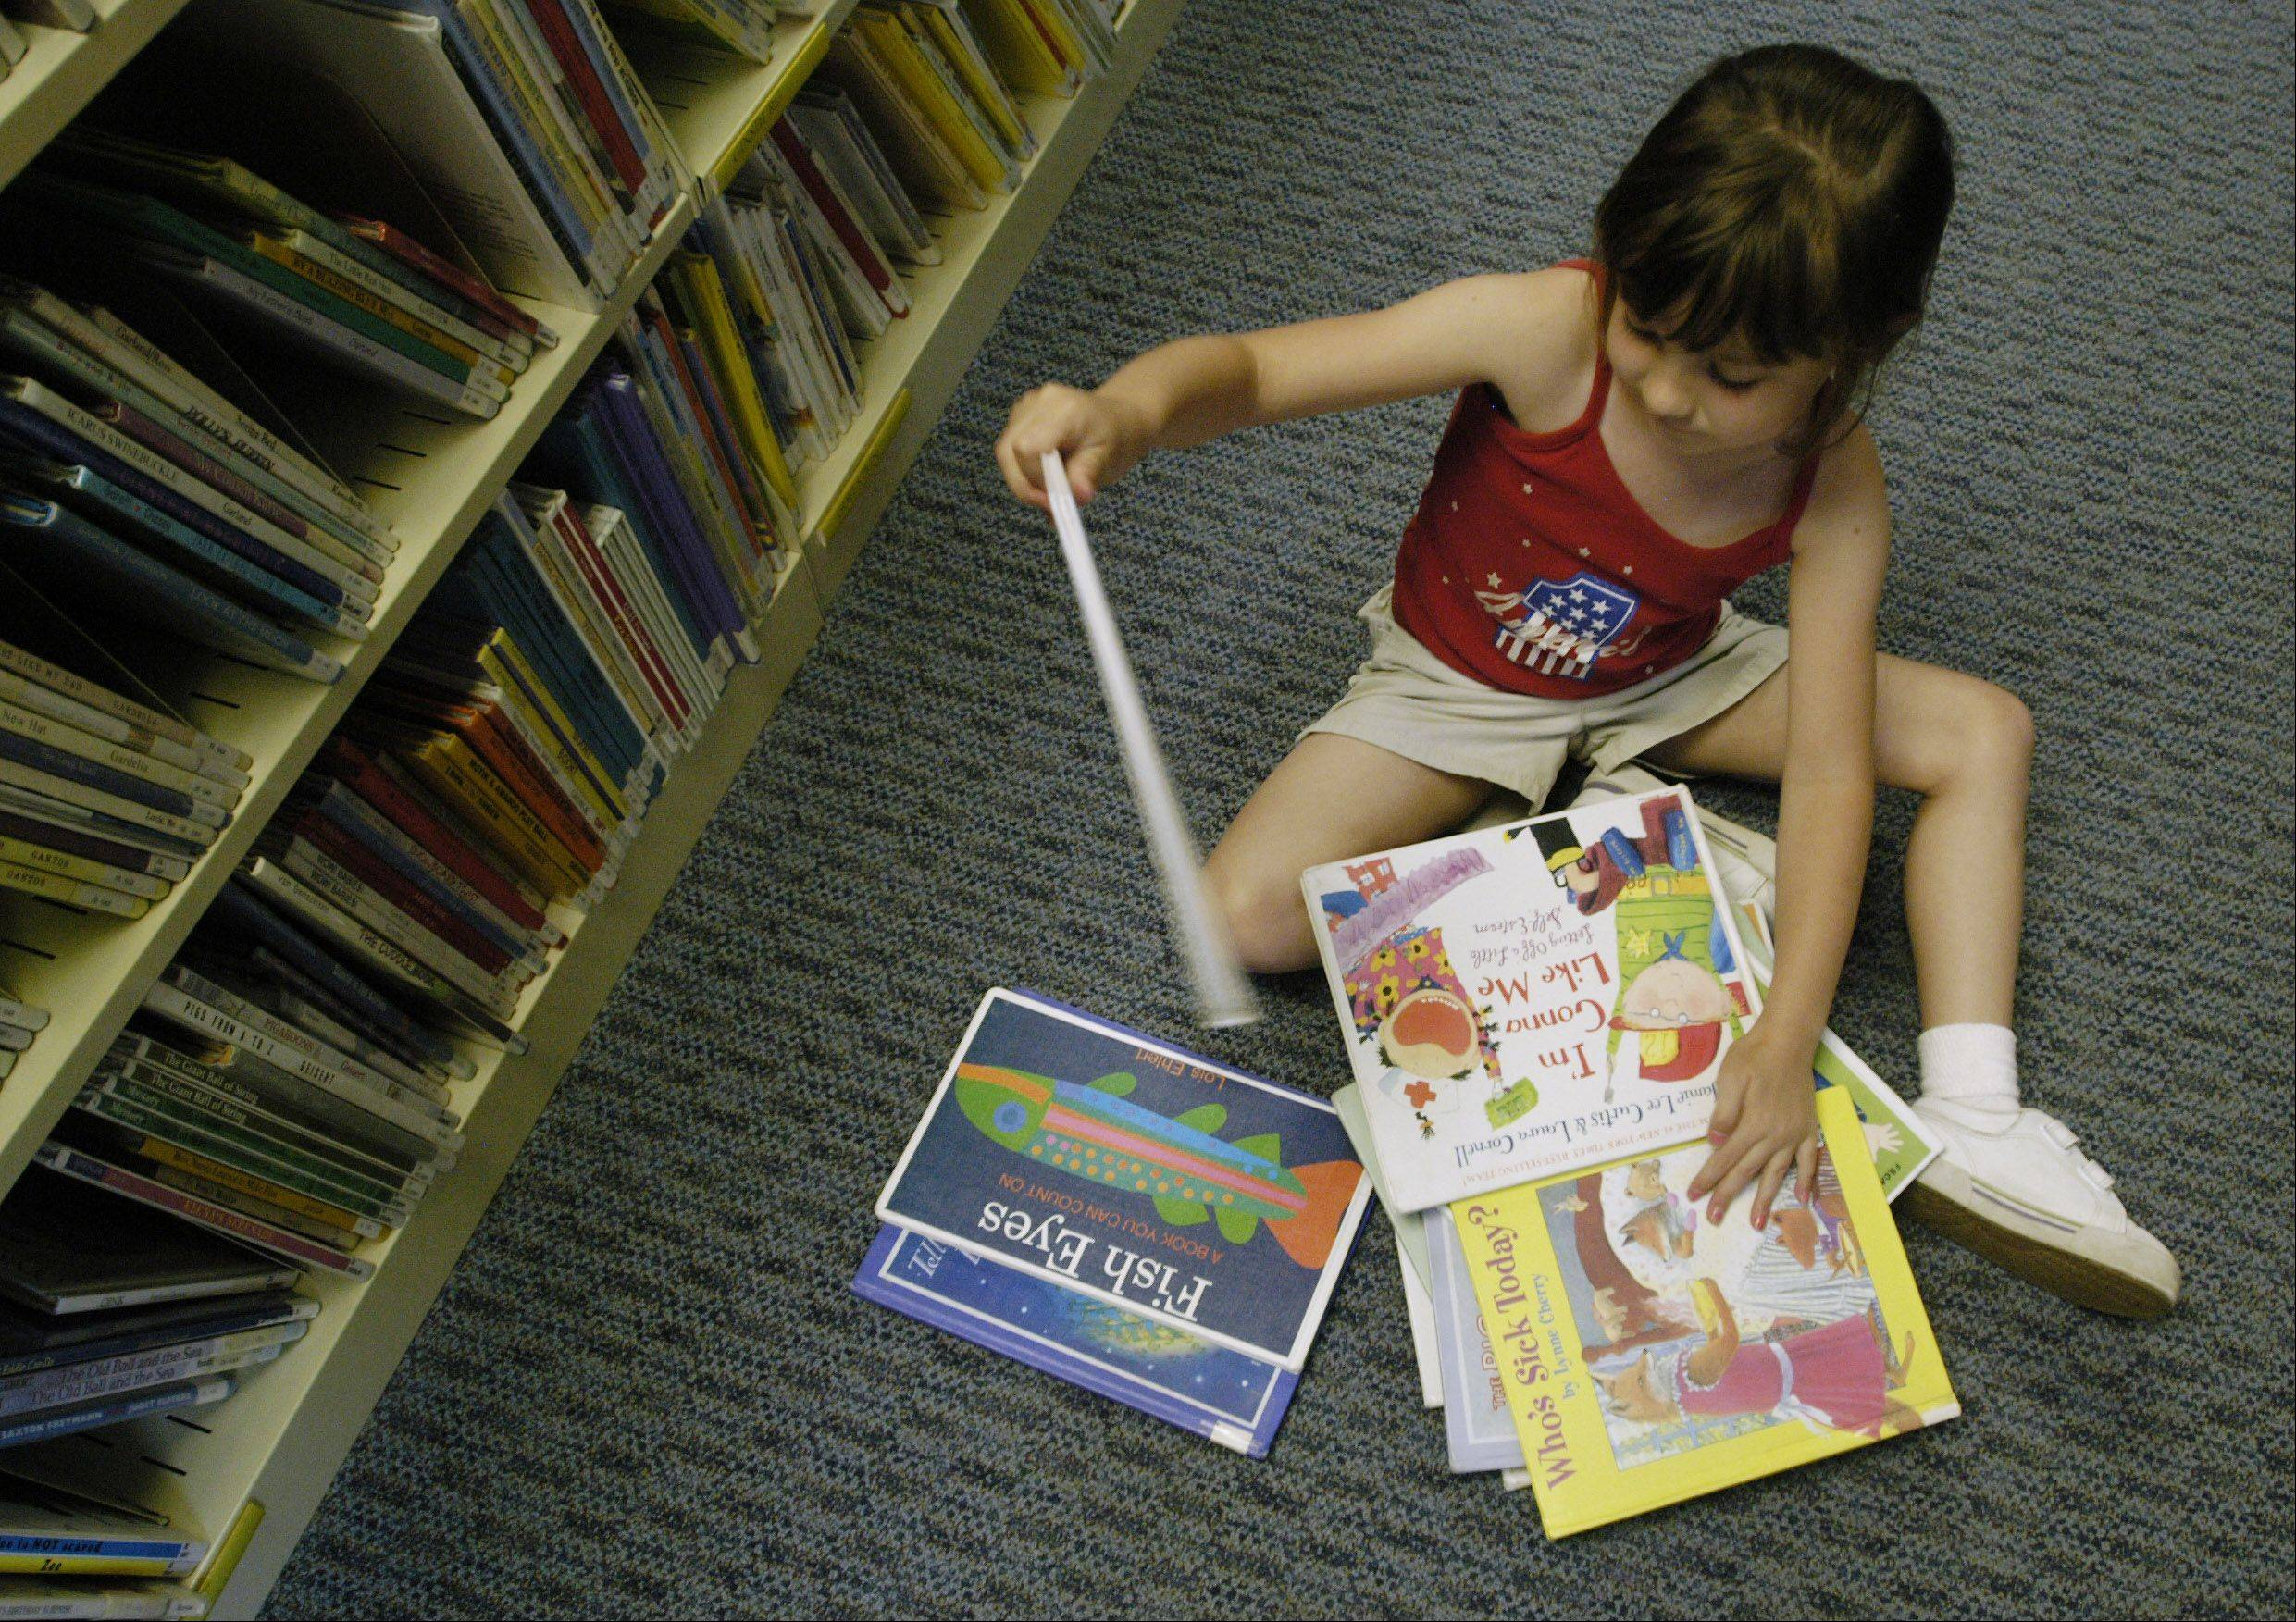 Children will soon begin checking out stacks of books as they begin to participate in summer reading programs throughout the suburbs.